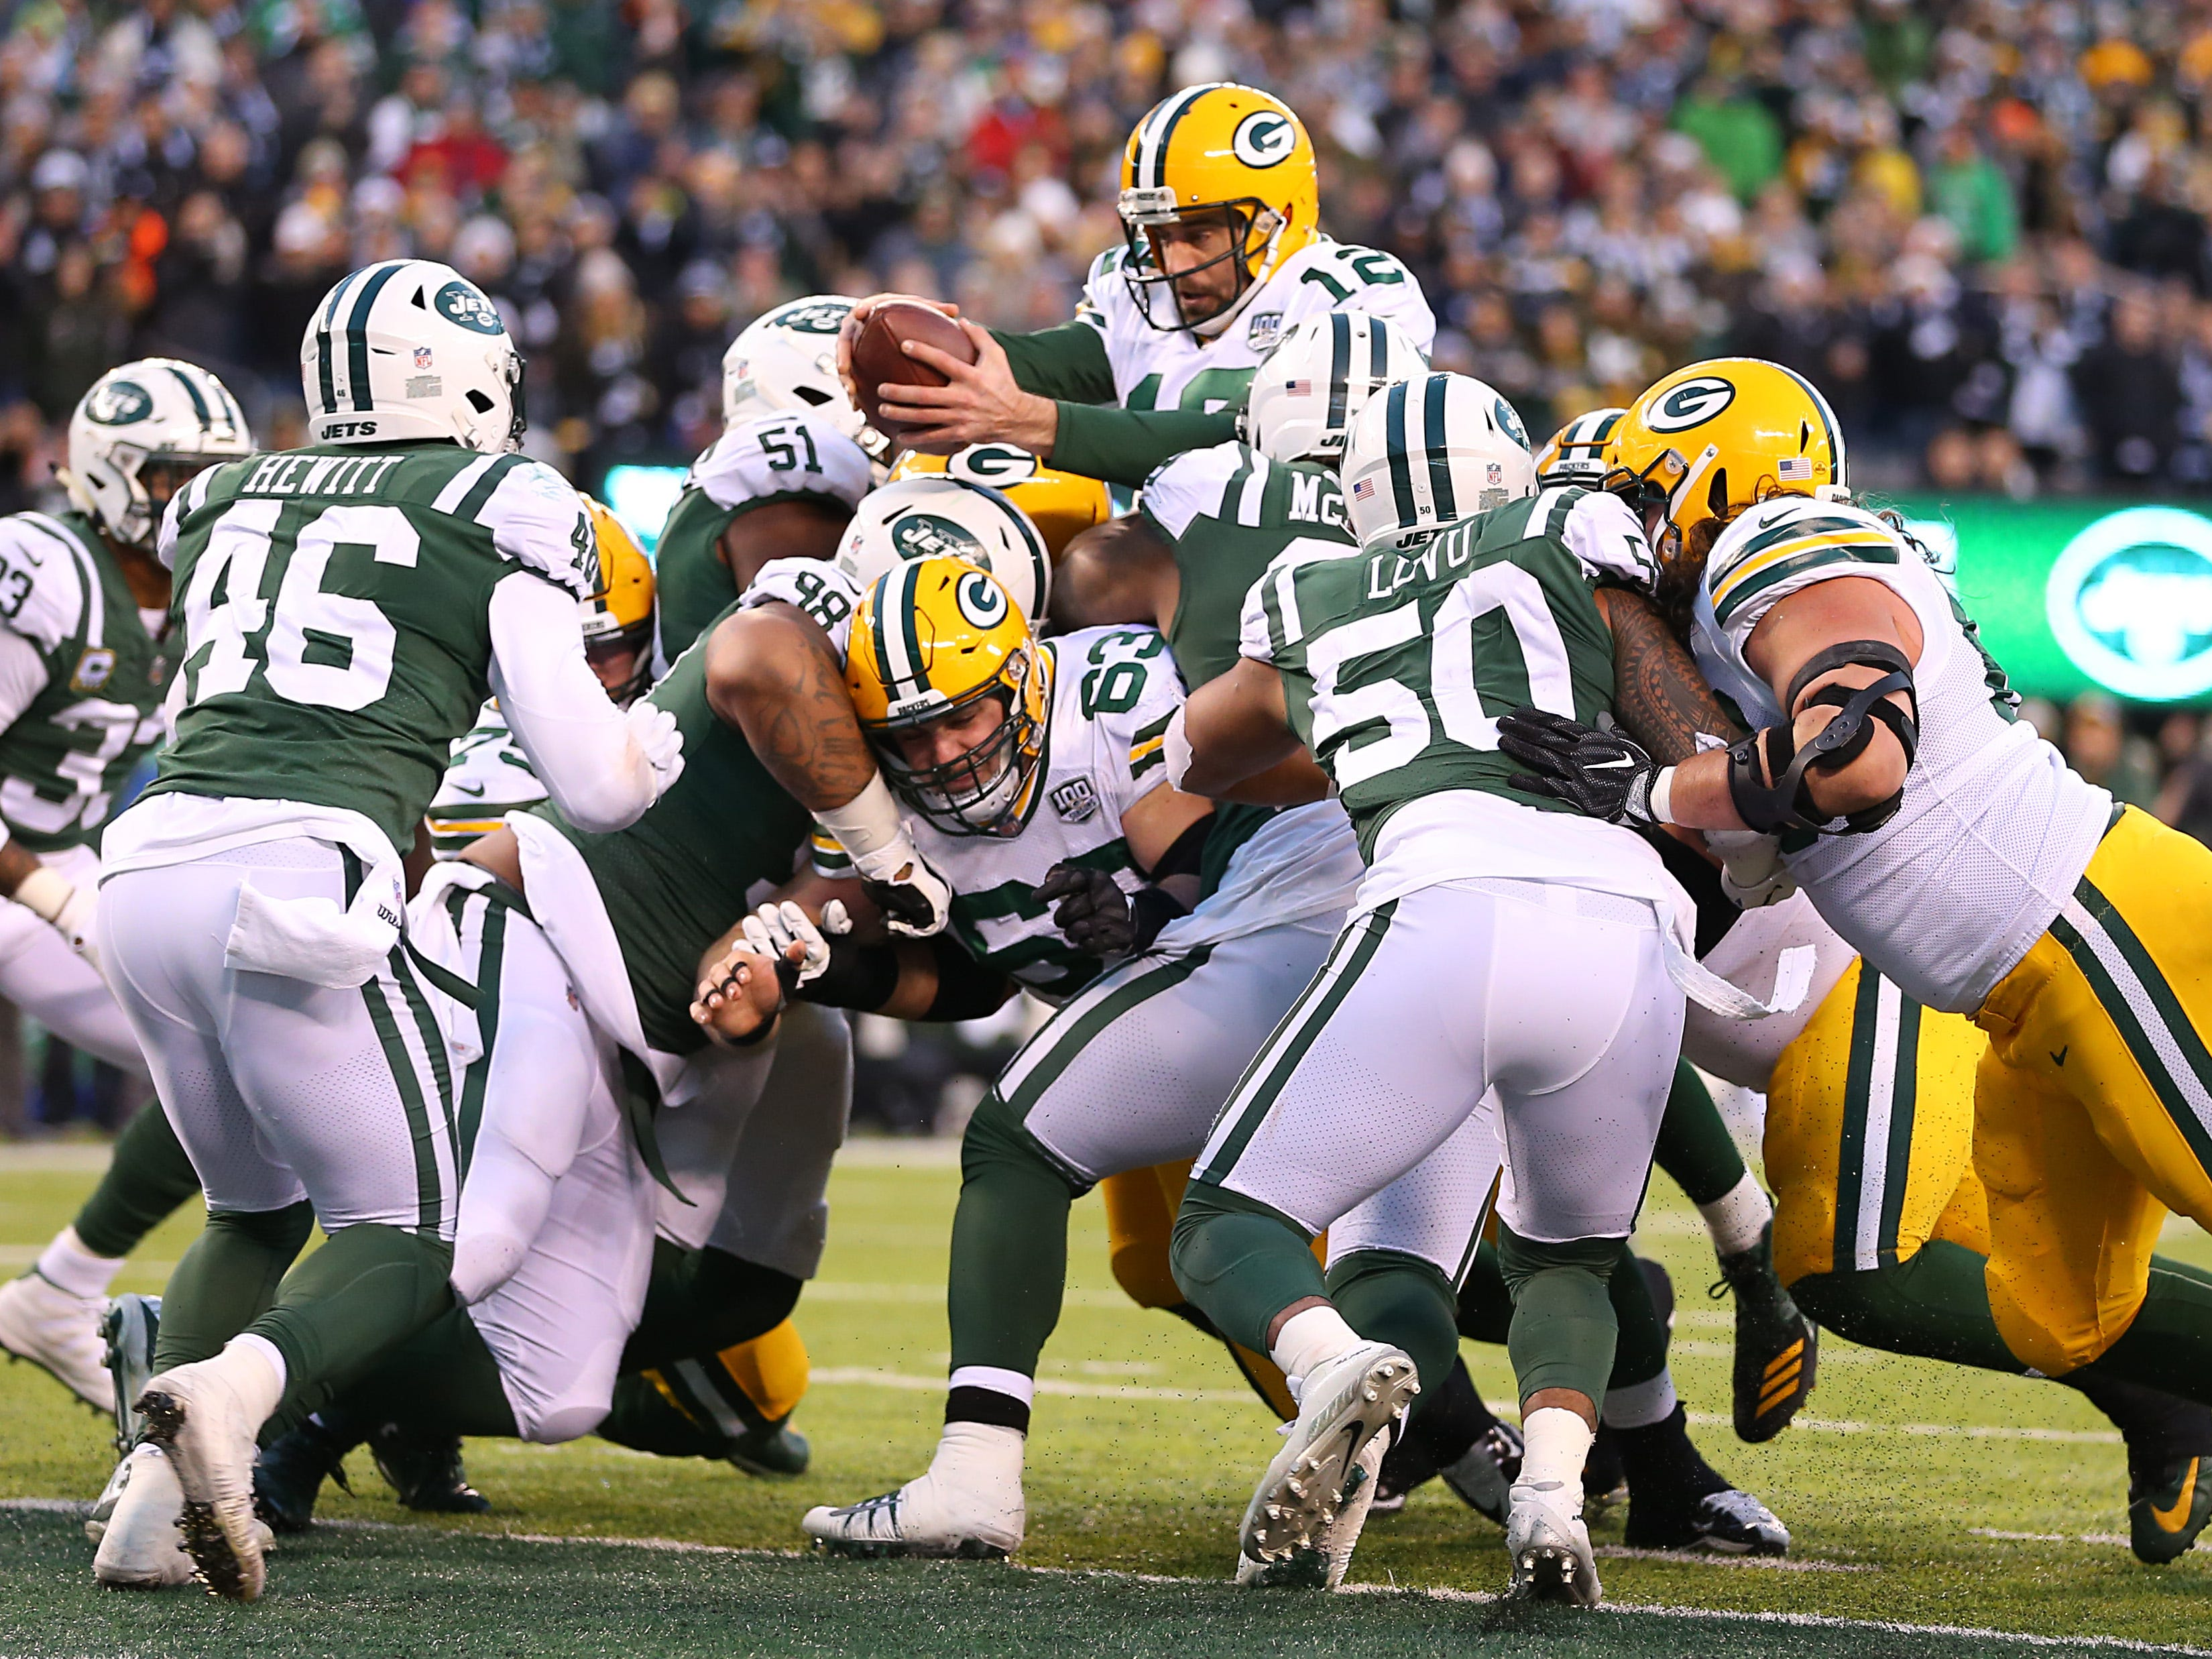 Week 16: Green Bay Packers quarterback Aaron Rodgers reaches over the line of scrimmage for a touchdown against the New York Jets at MetLife Stadium. The Packers won the game, 44-38, in overtime.